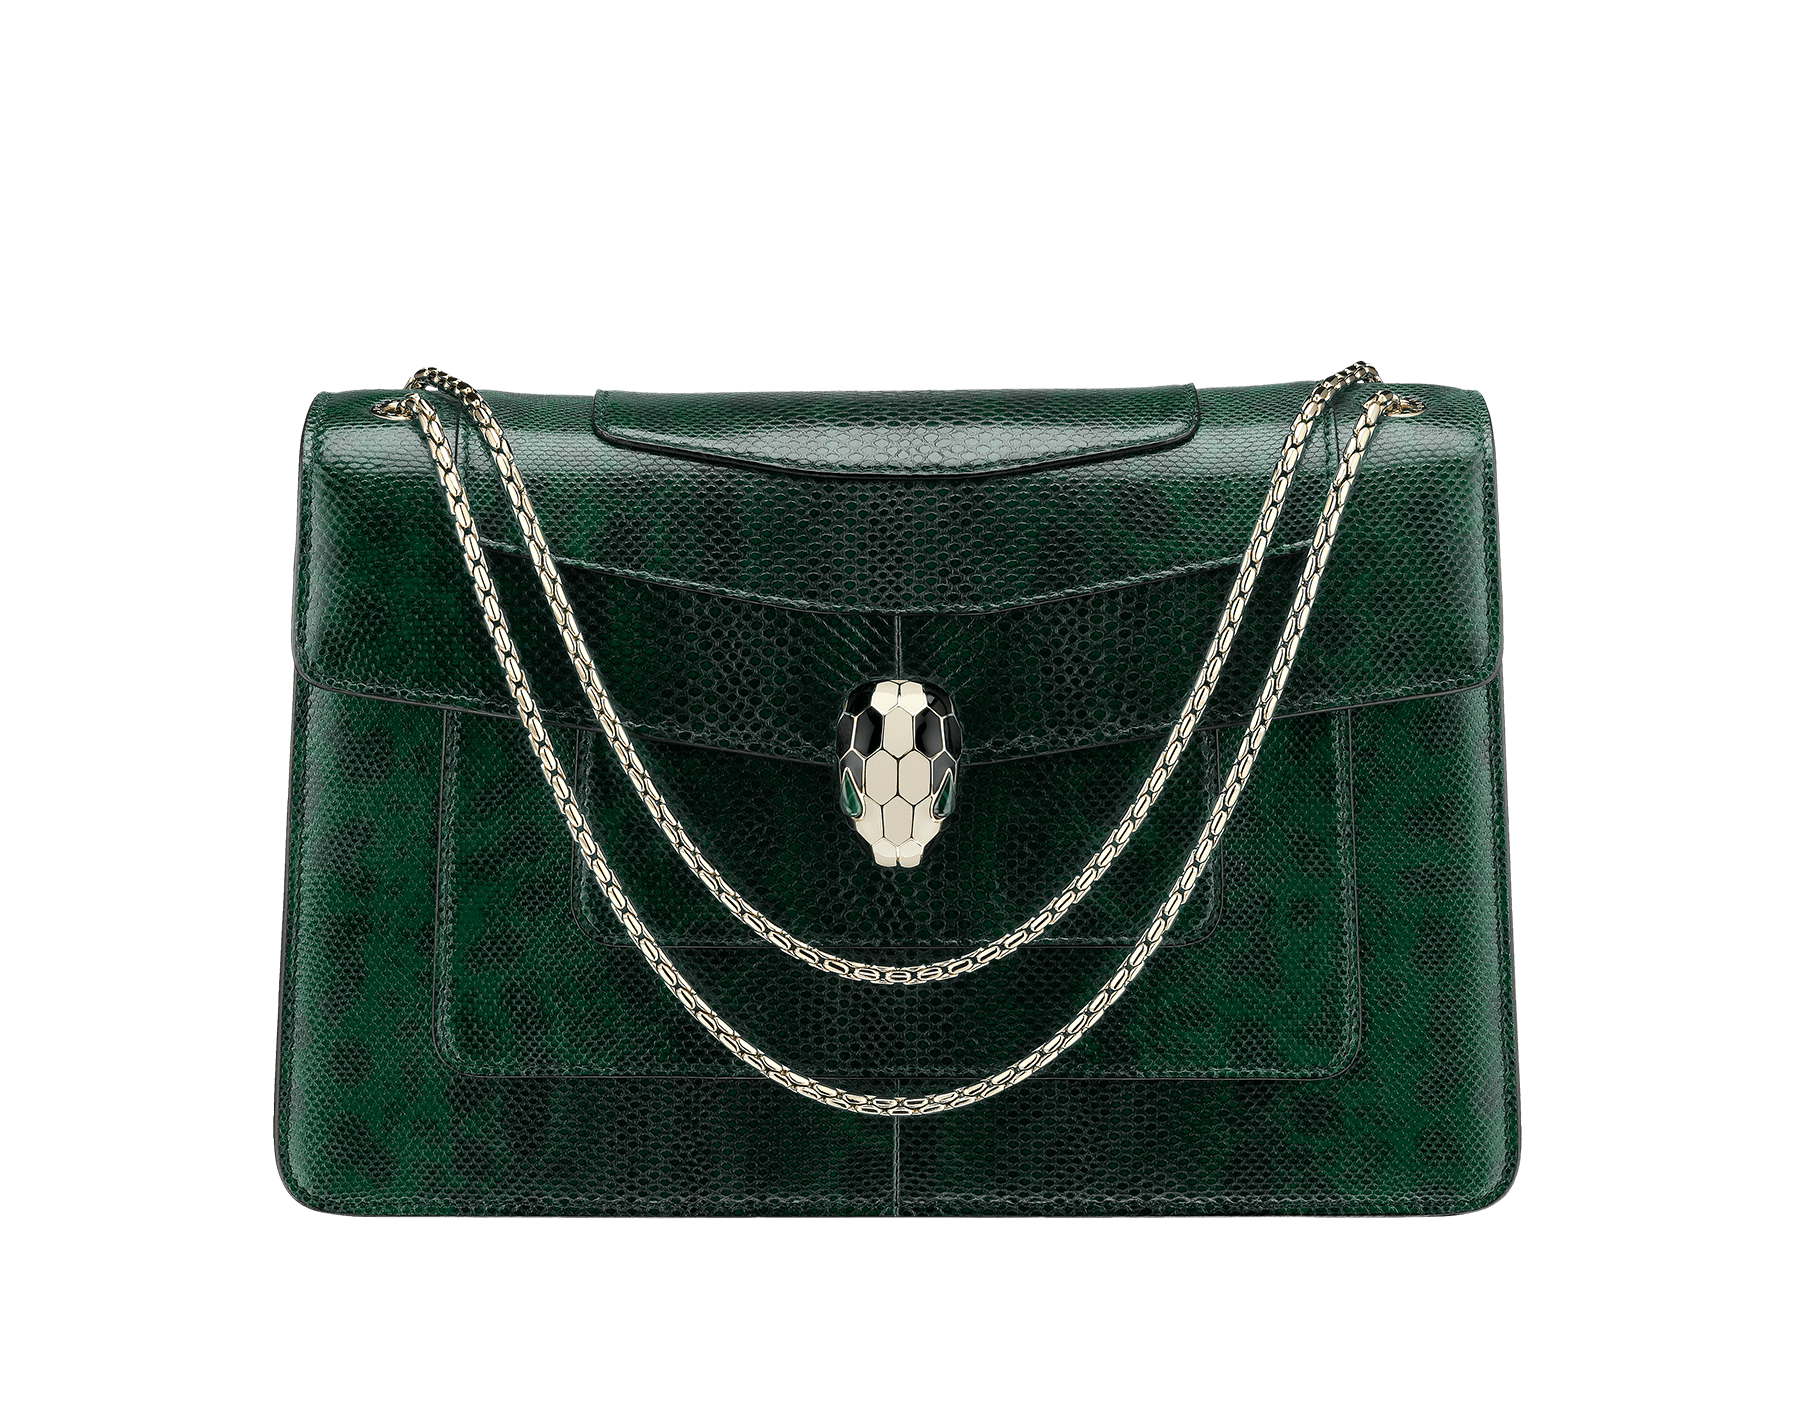 Flap cover bag Serpenti Forever in roman garnet shiny karung skin. Brass light gold plated tempting snake head closure in shiny black and white enamel, with eyes in green malachite. 521-SK image 1